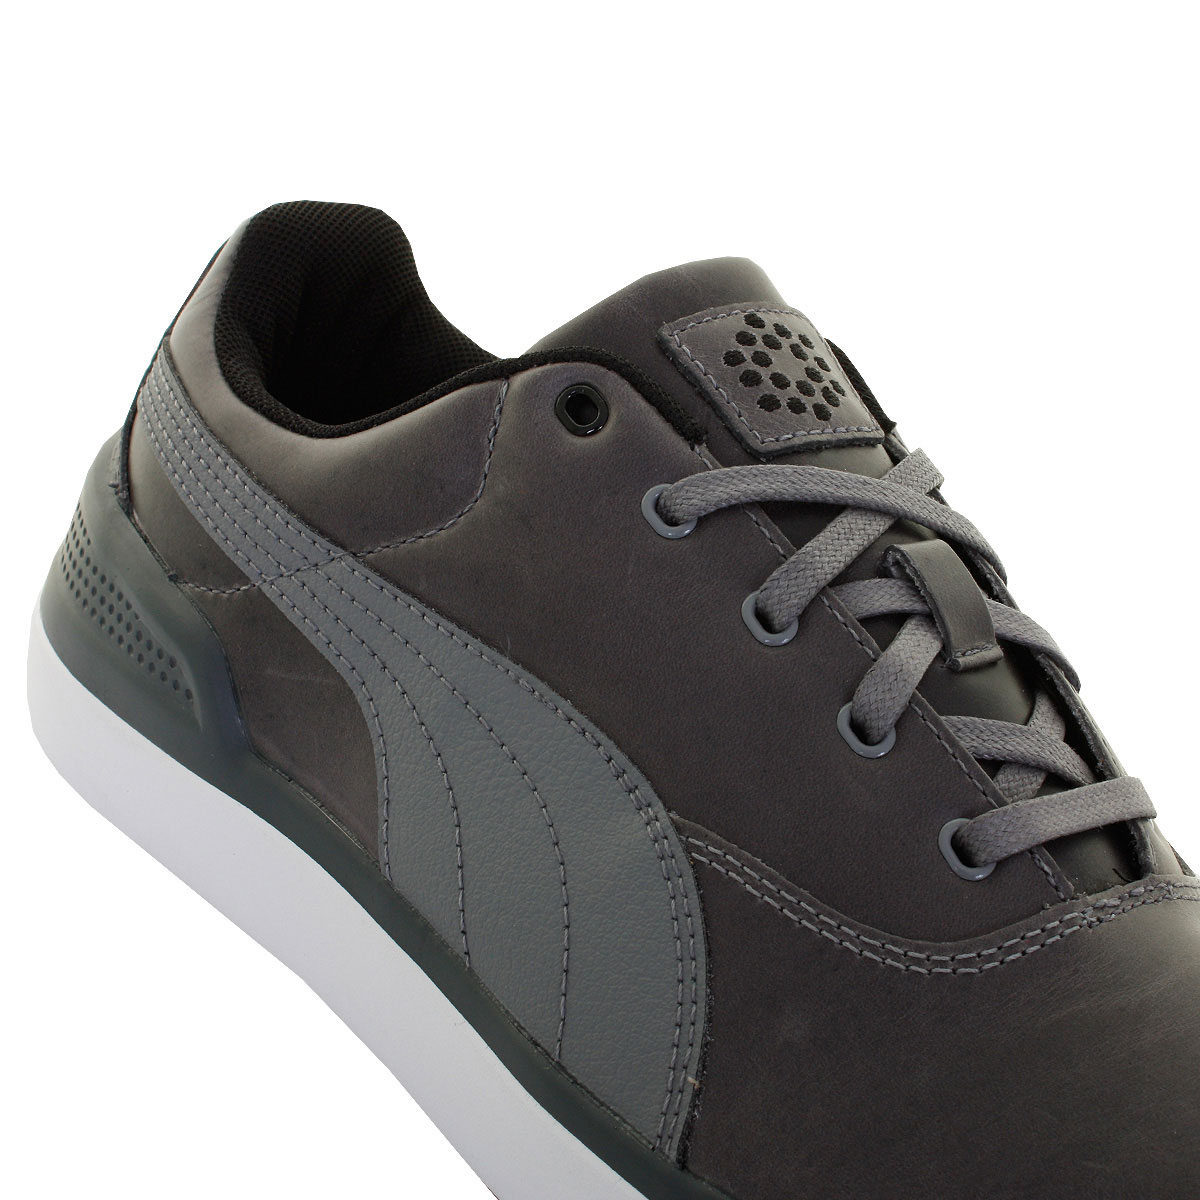 Puma-Golf-Mens-Monolite-2-0-Golf-Shoes-Spikeless-Waterproof-Leather-50-OFF-RRP thumbnail 11